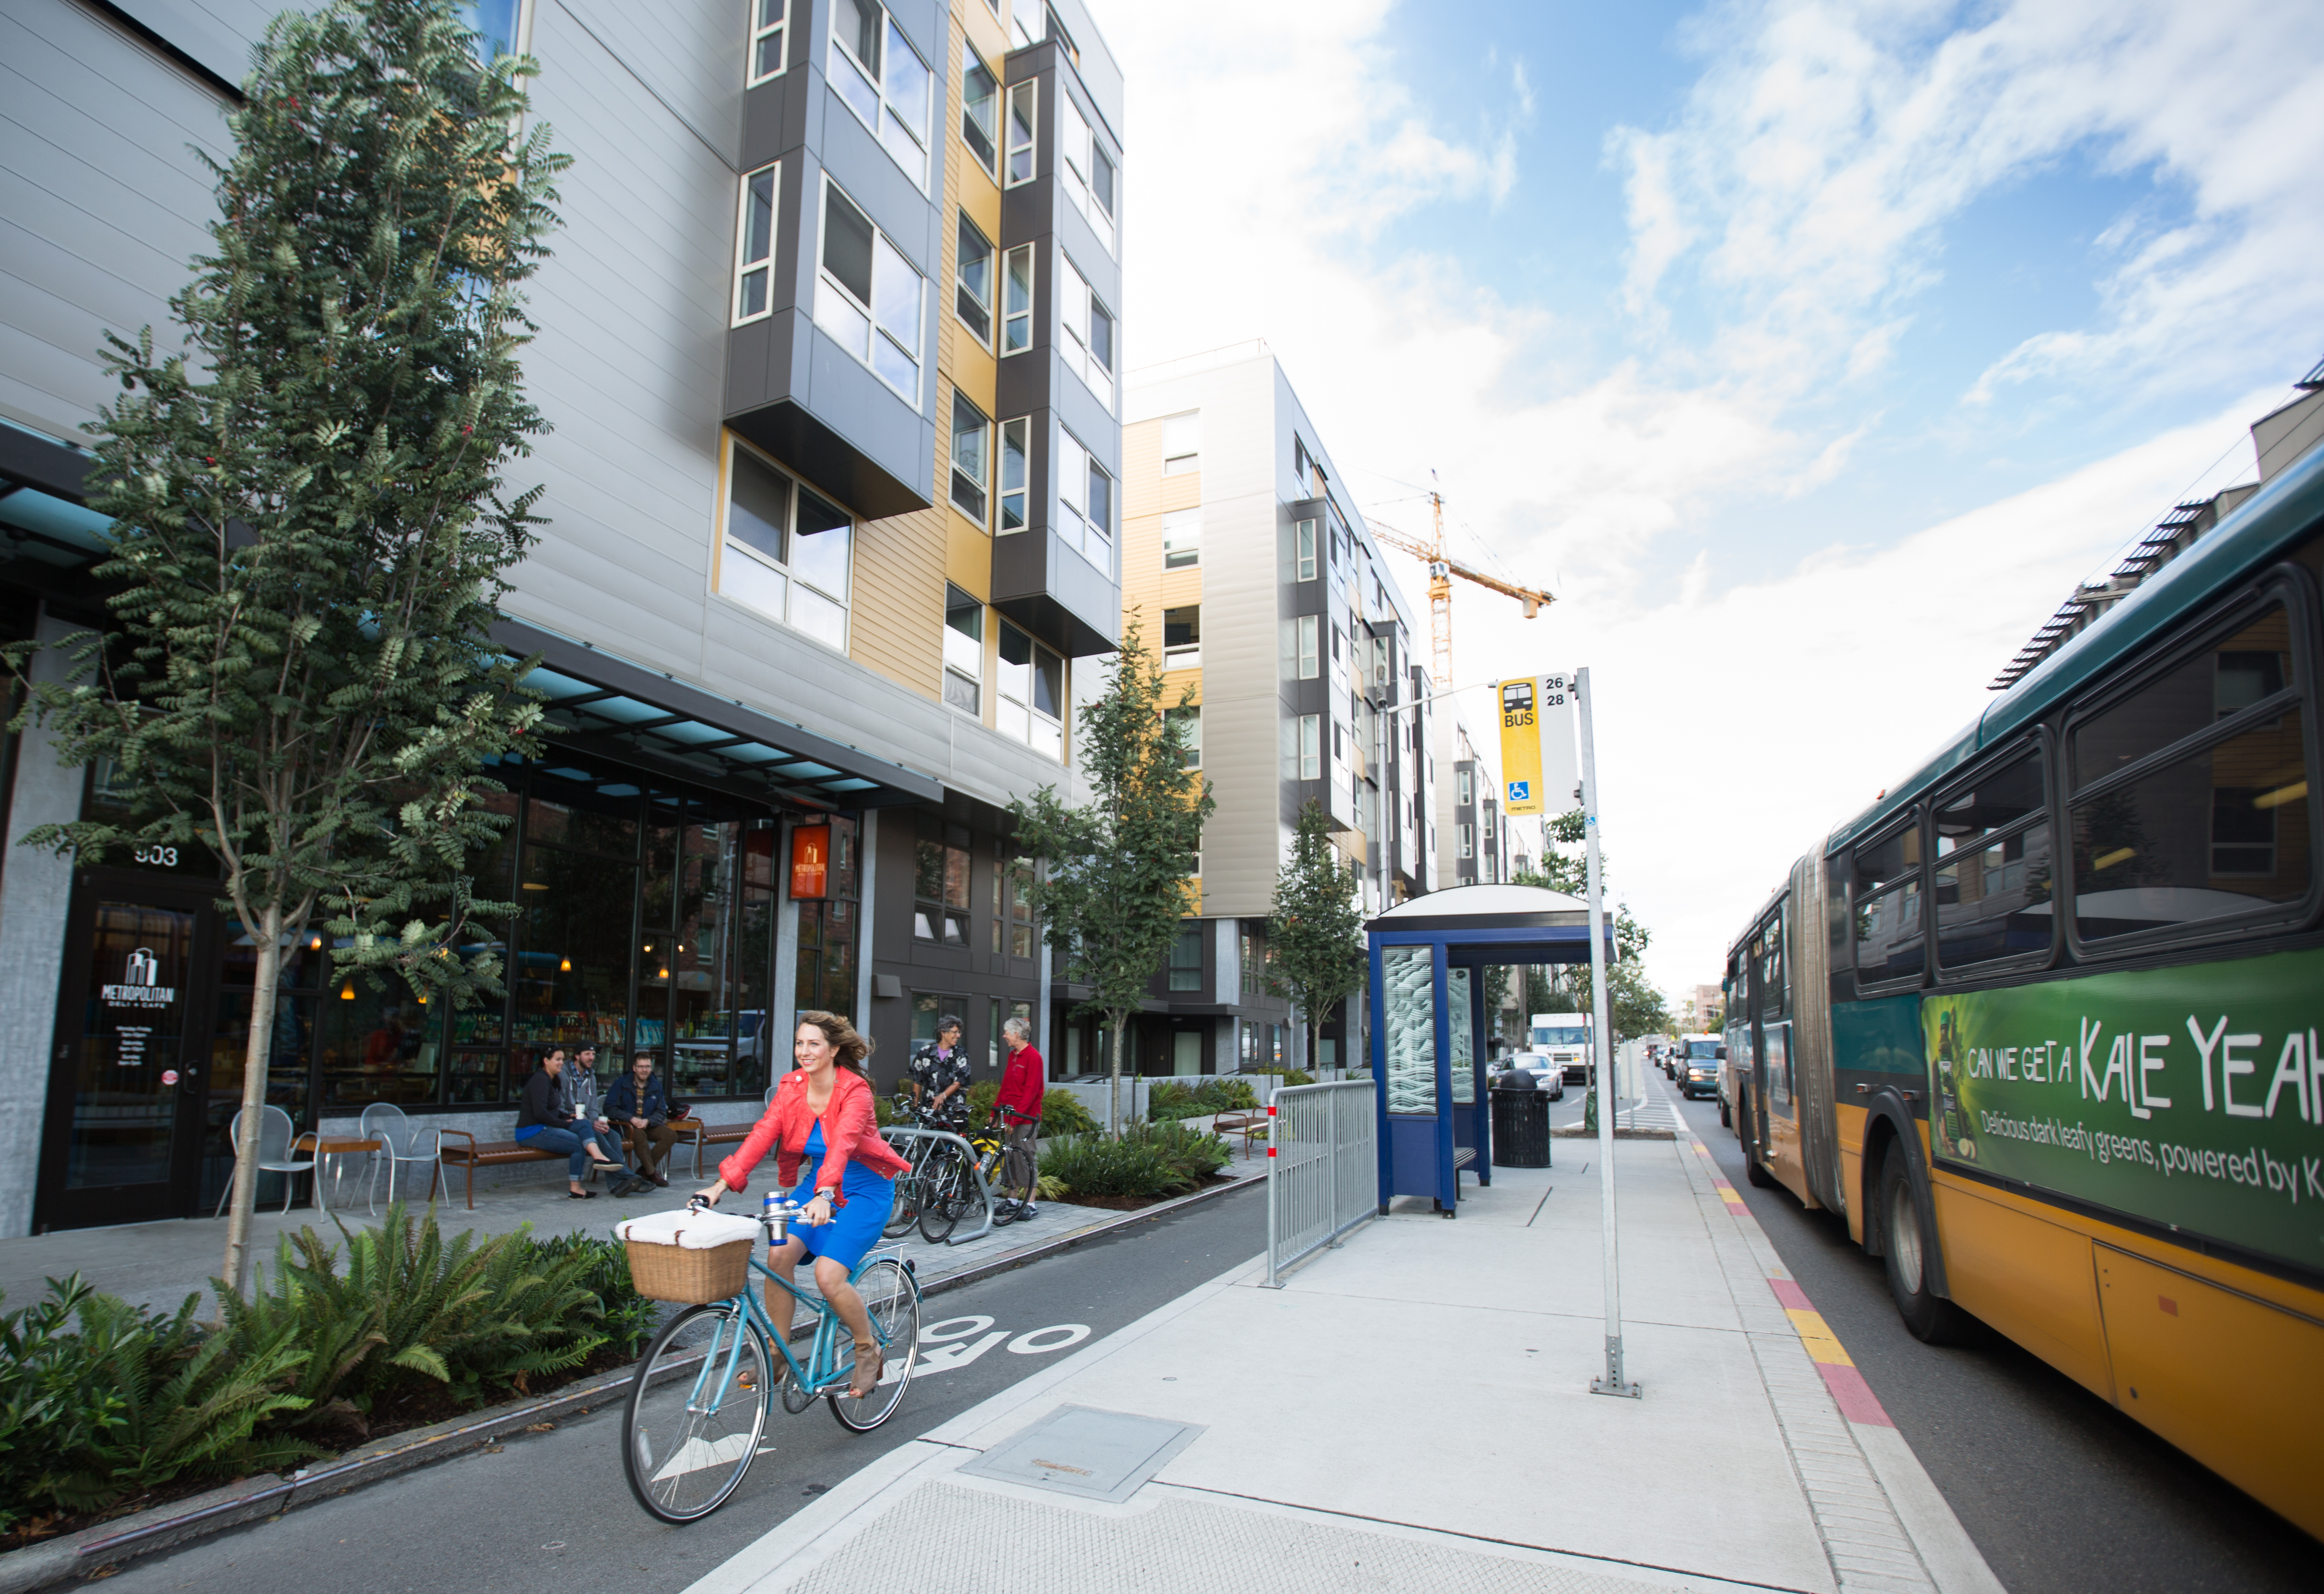 Dexter Avenue, Seattle (credit: Green Lane Project)